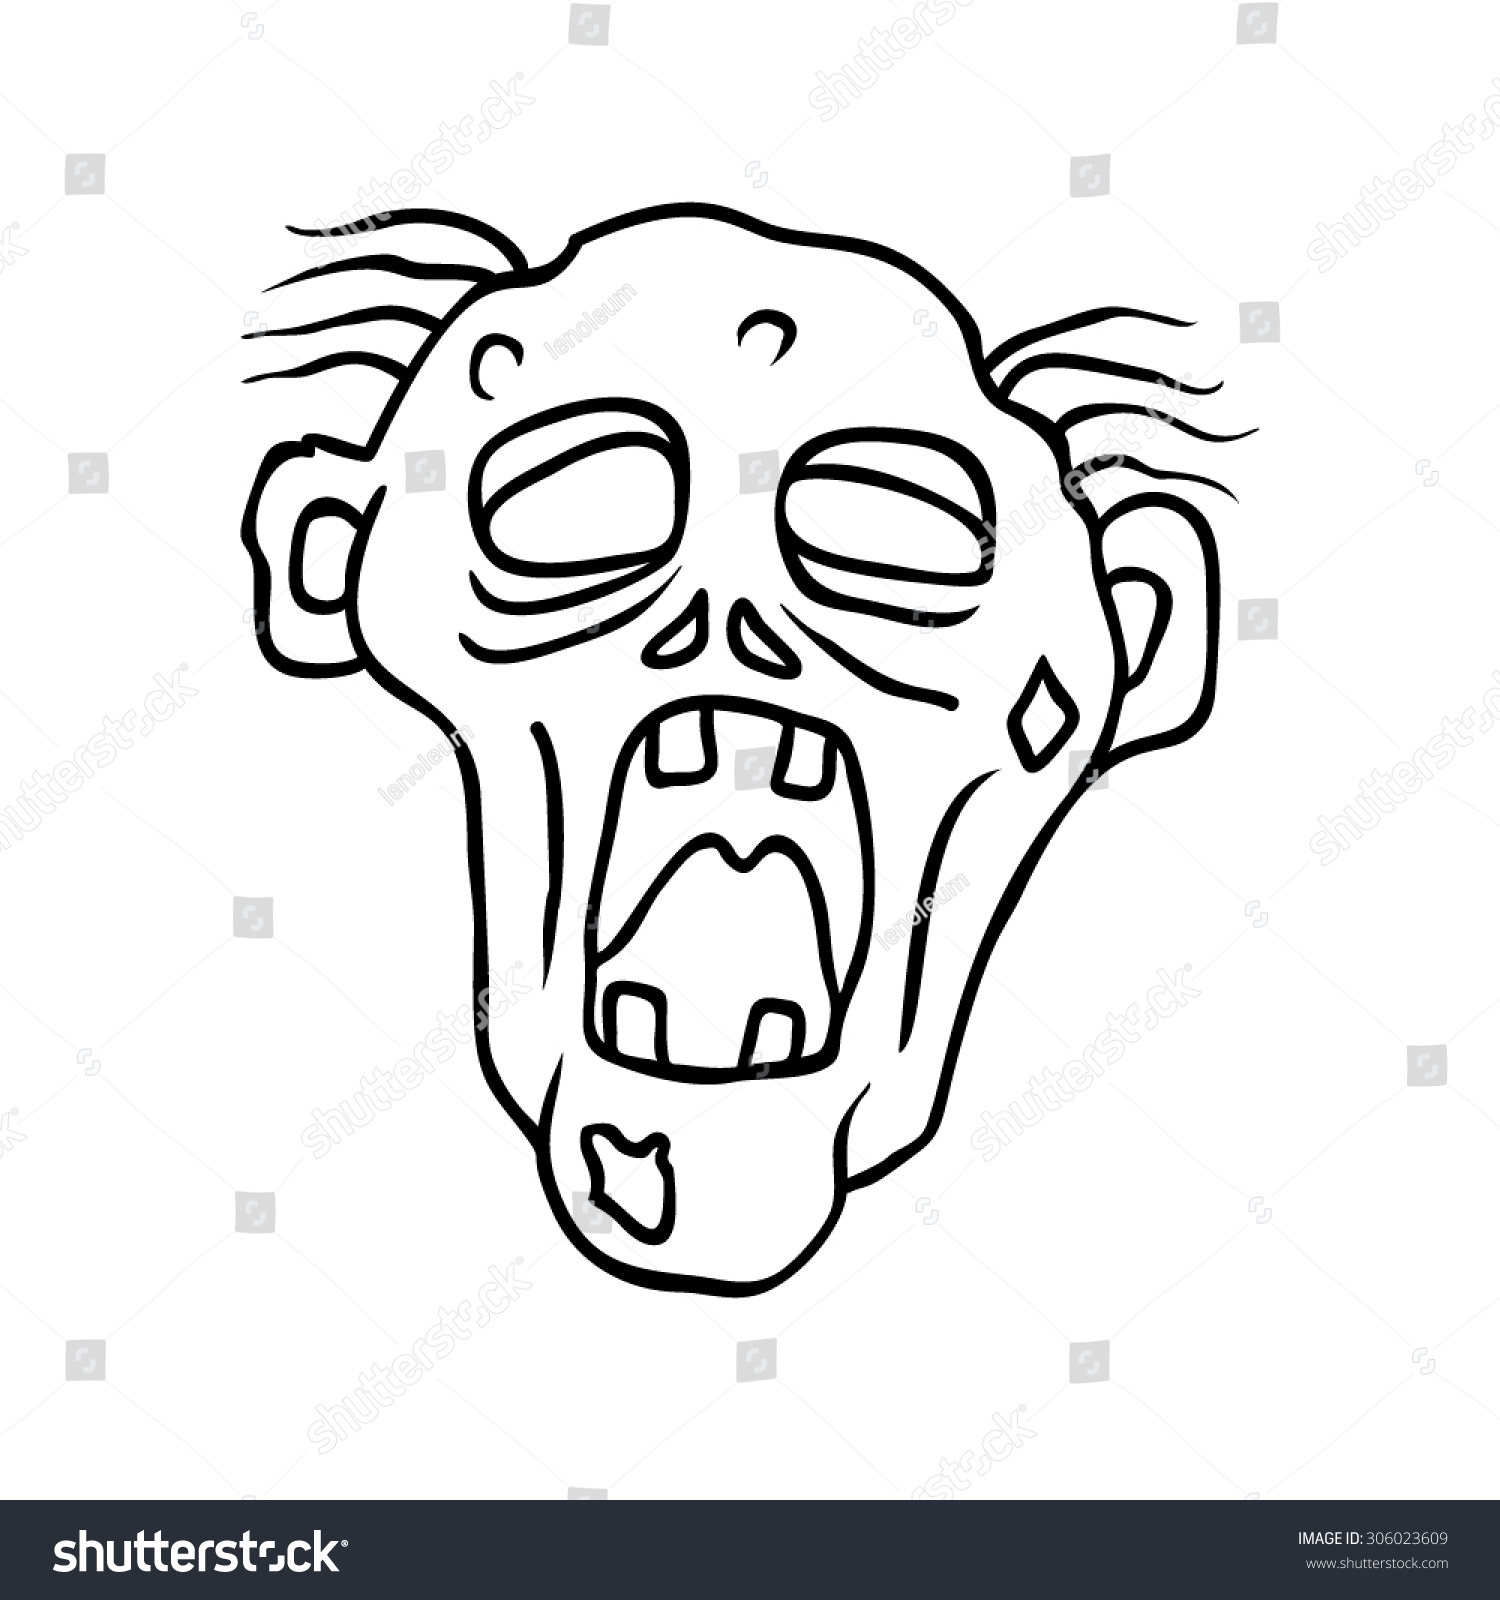 Zombie Line Art : Funny moaning zombie line art hand stock vector